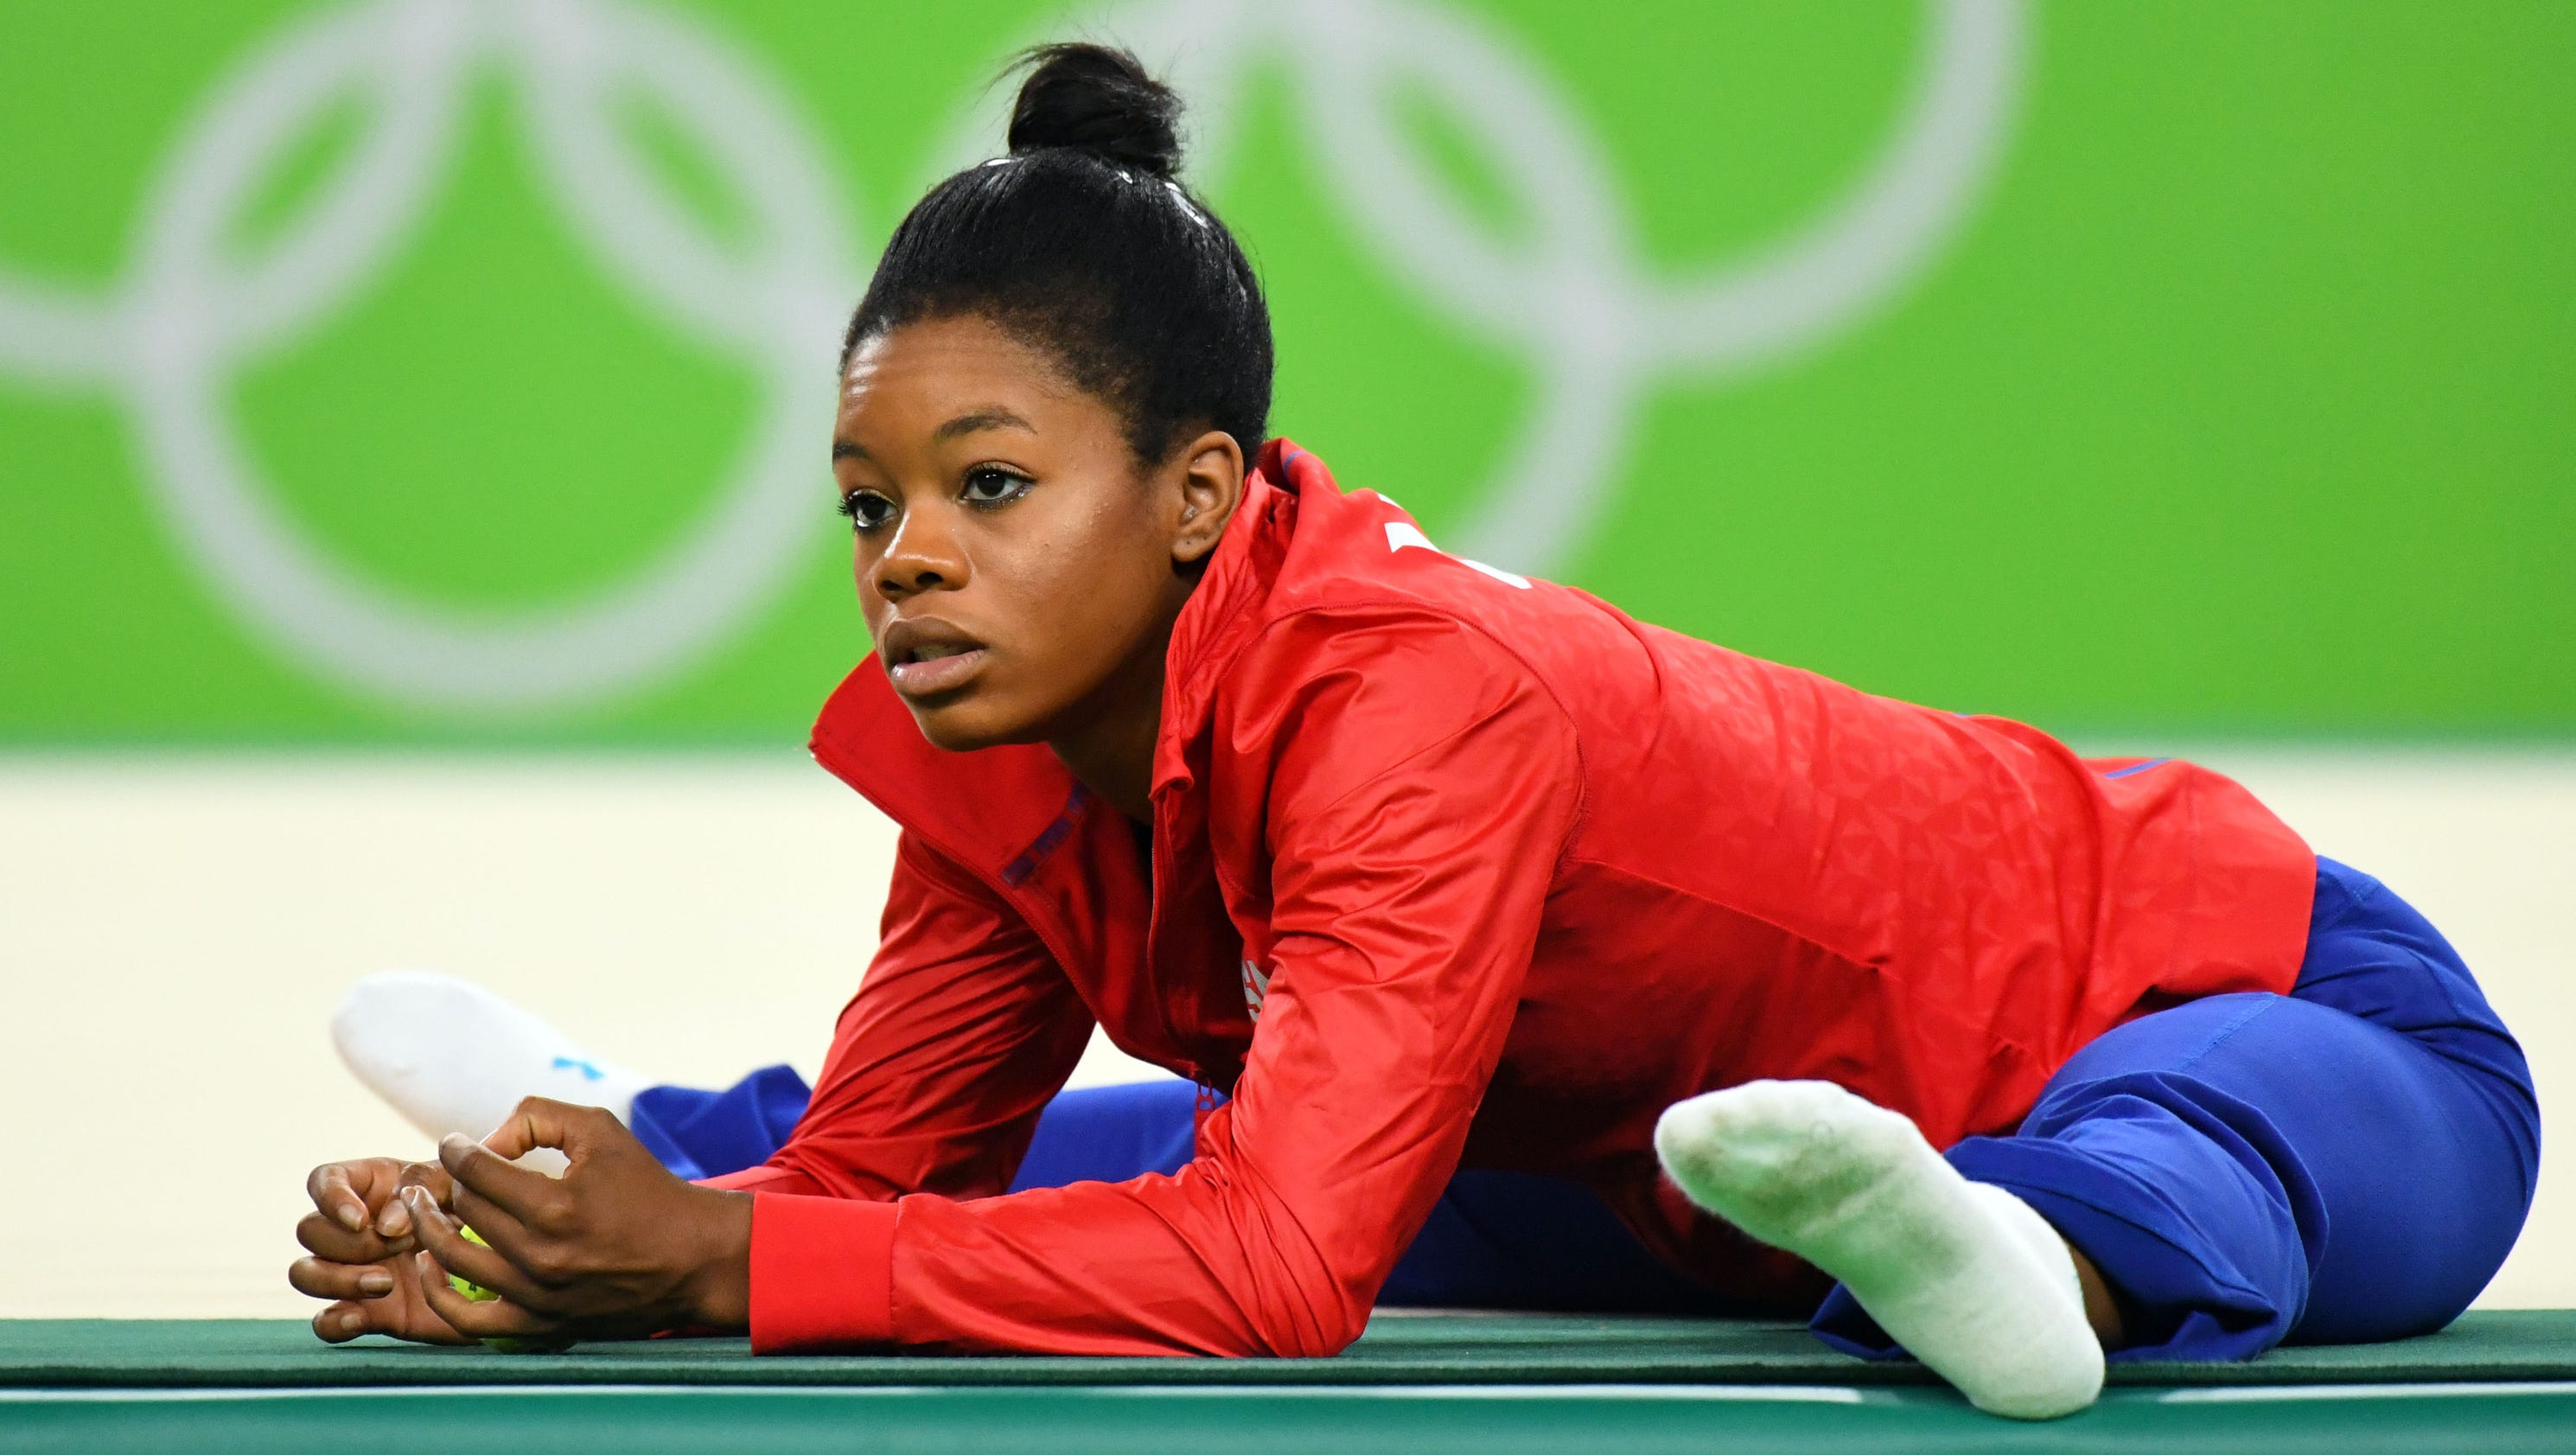 gabby douglas paper Gabby douglas and the us olympic women's gymnastics successes make a mom ponder going for parenting gold – and the extreme sport it is to raise an olympian.